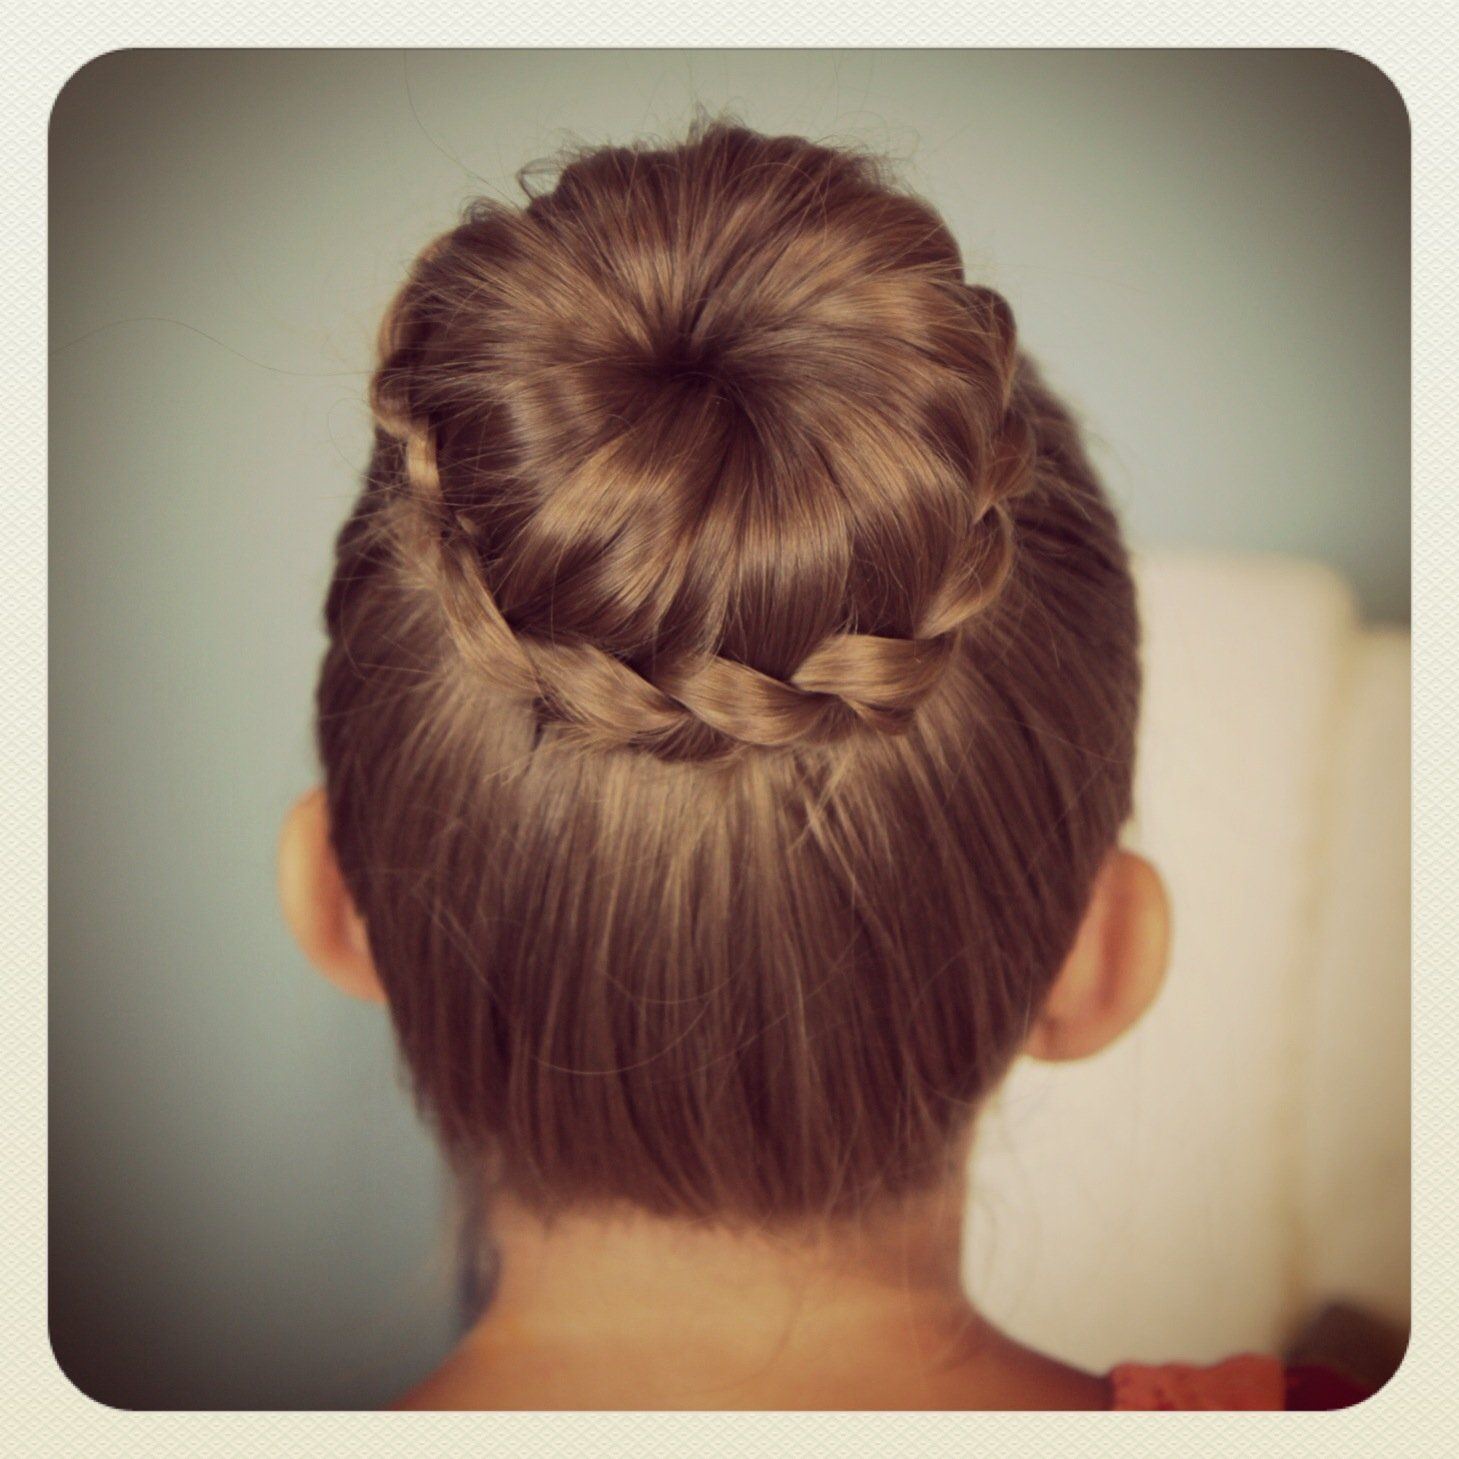 Hairstyle Girl French Roll: Pin On WEDDING